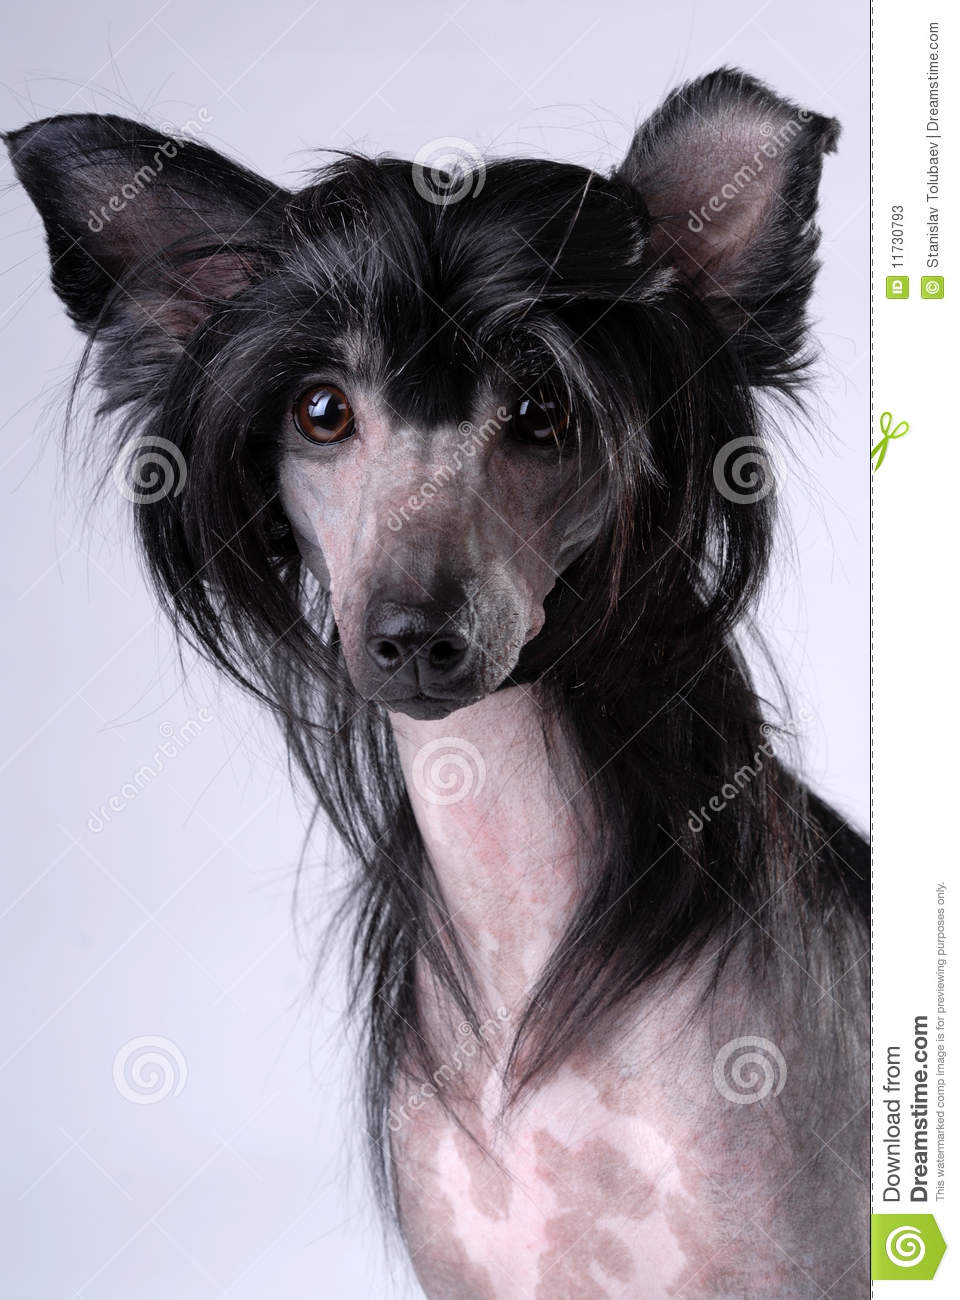 Chinese Crested Hairless Dog Black